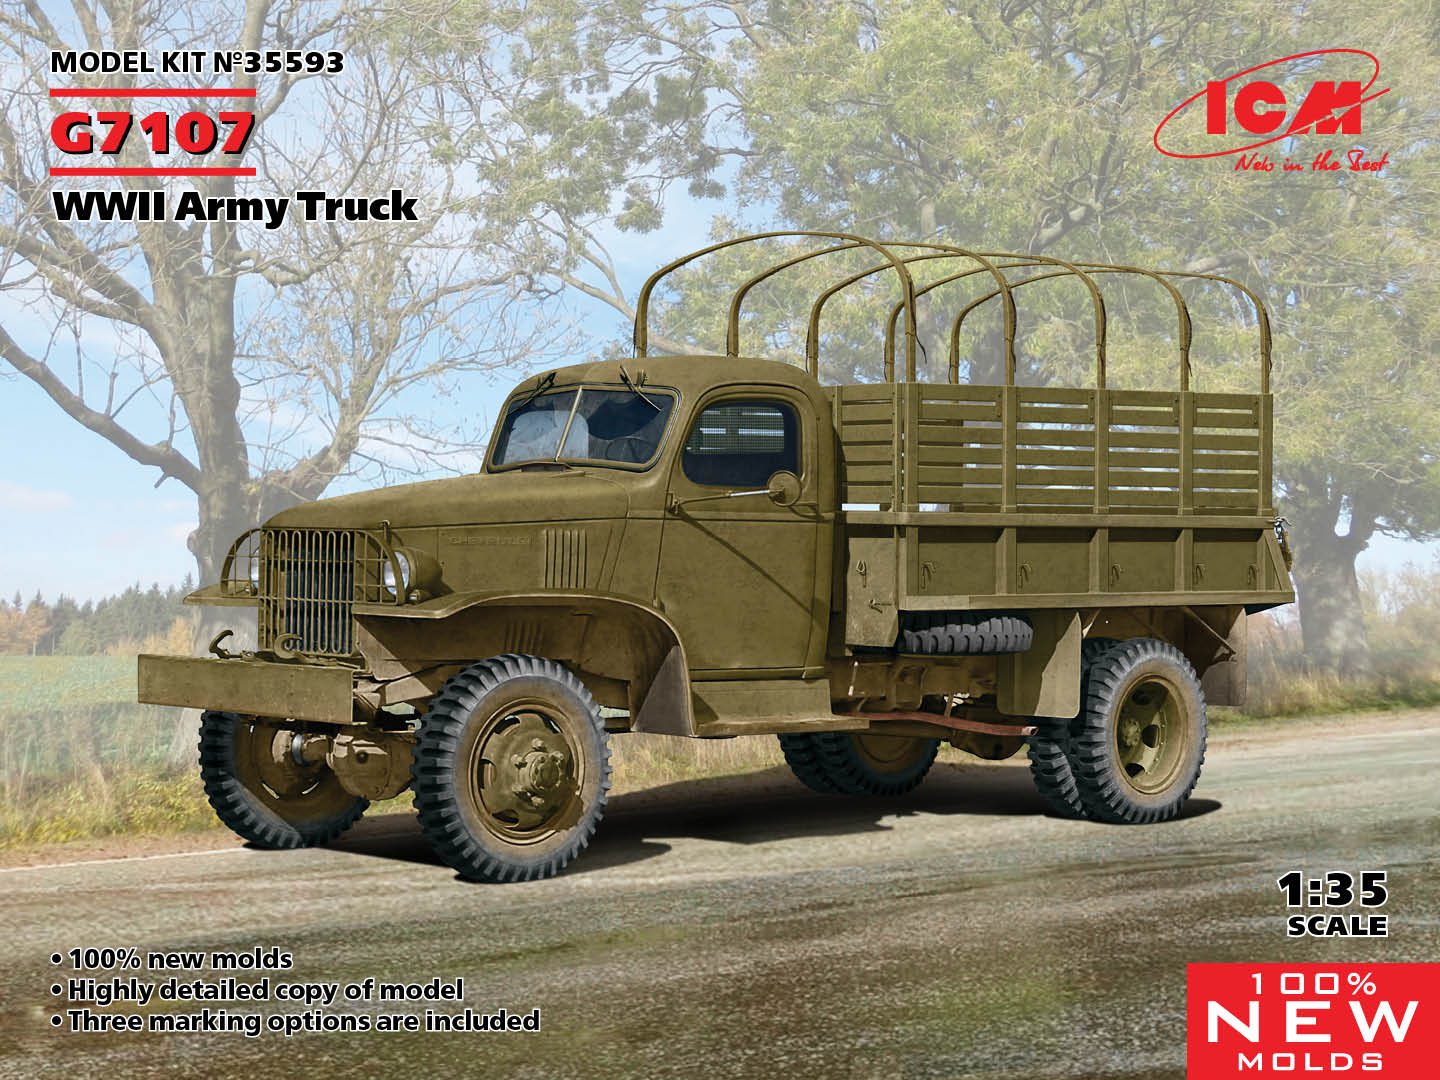 ICM 1/35 G7107, WWII Army Truck (100% new molds)